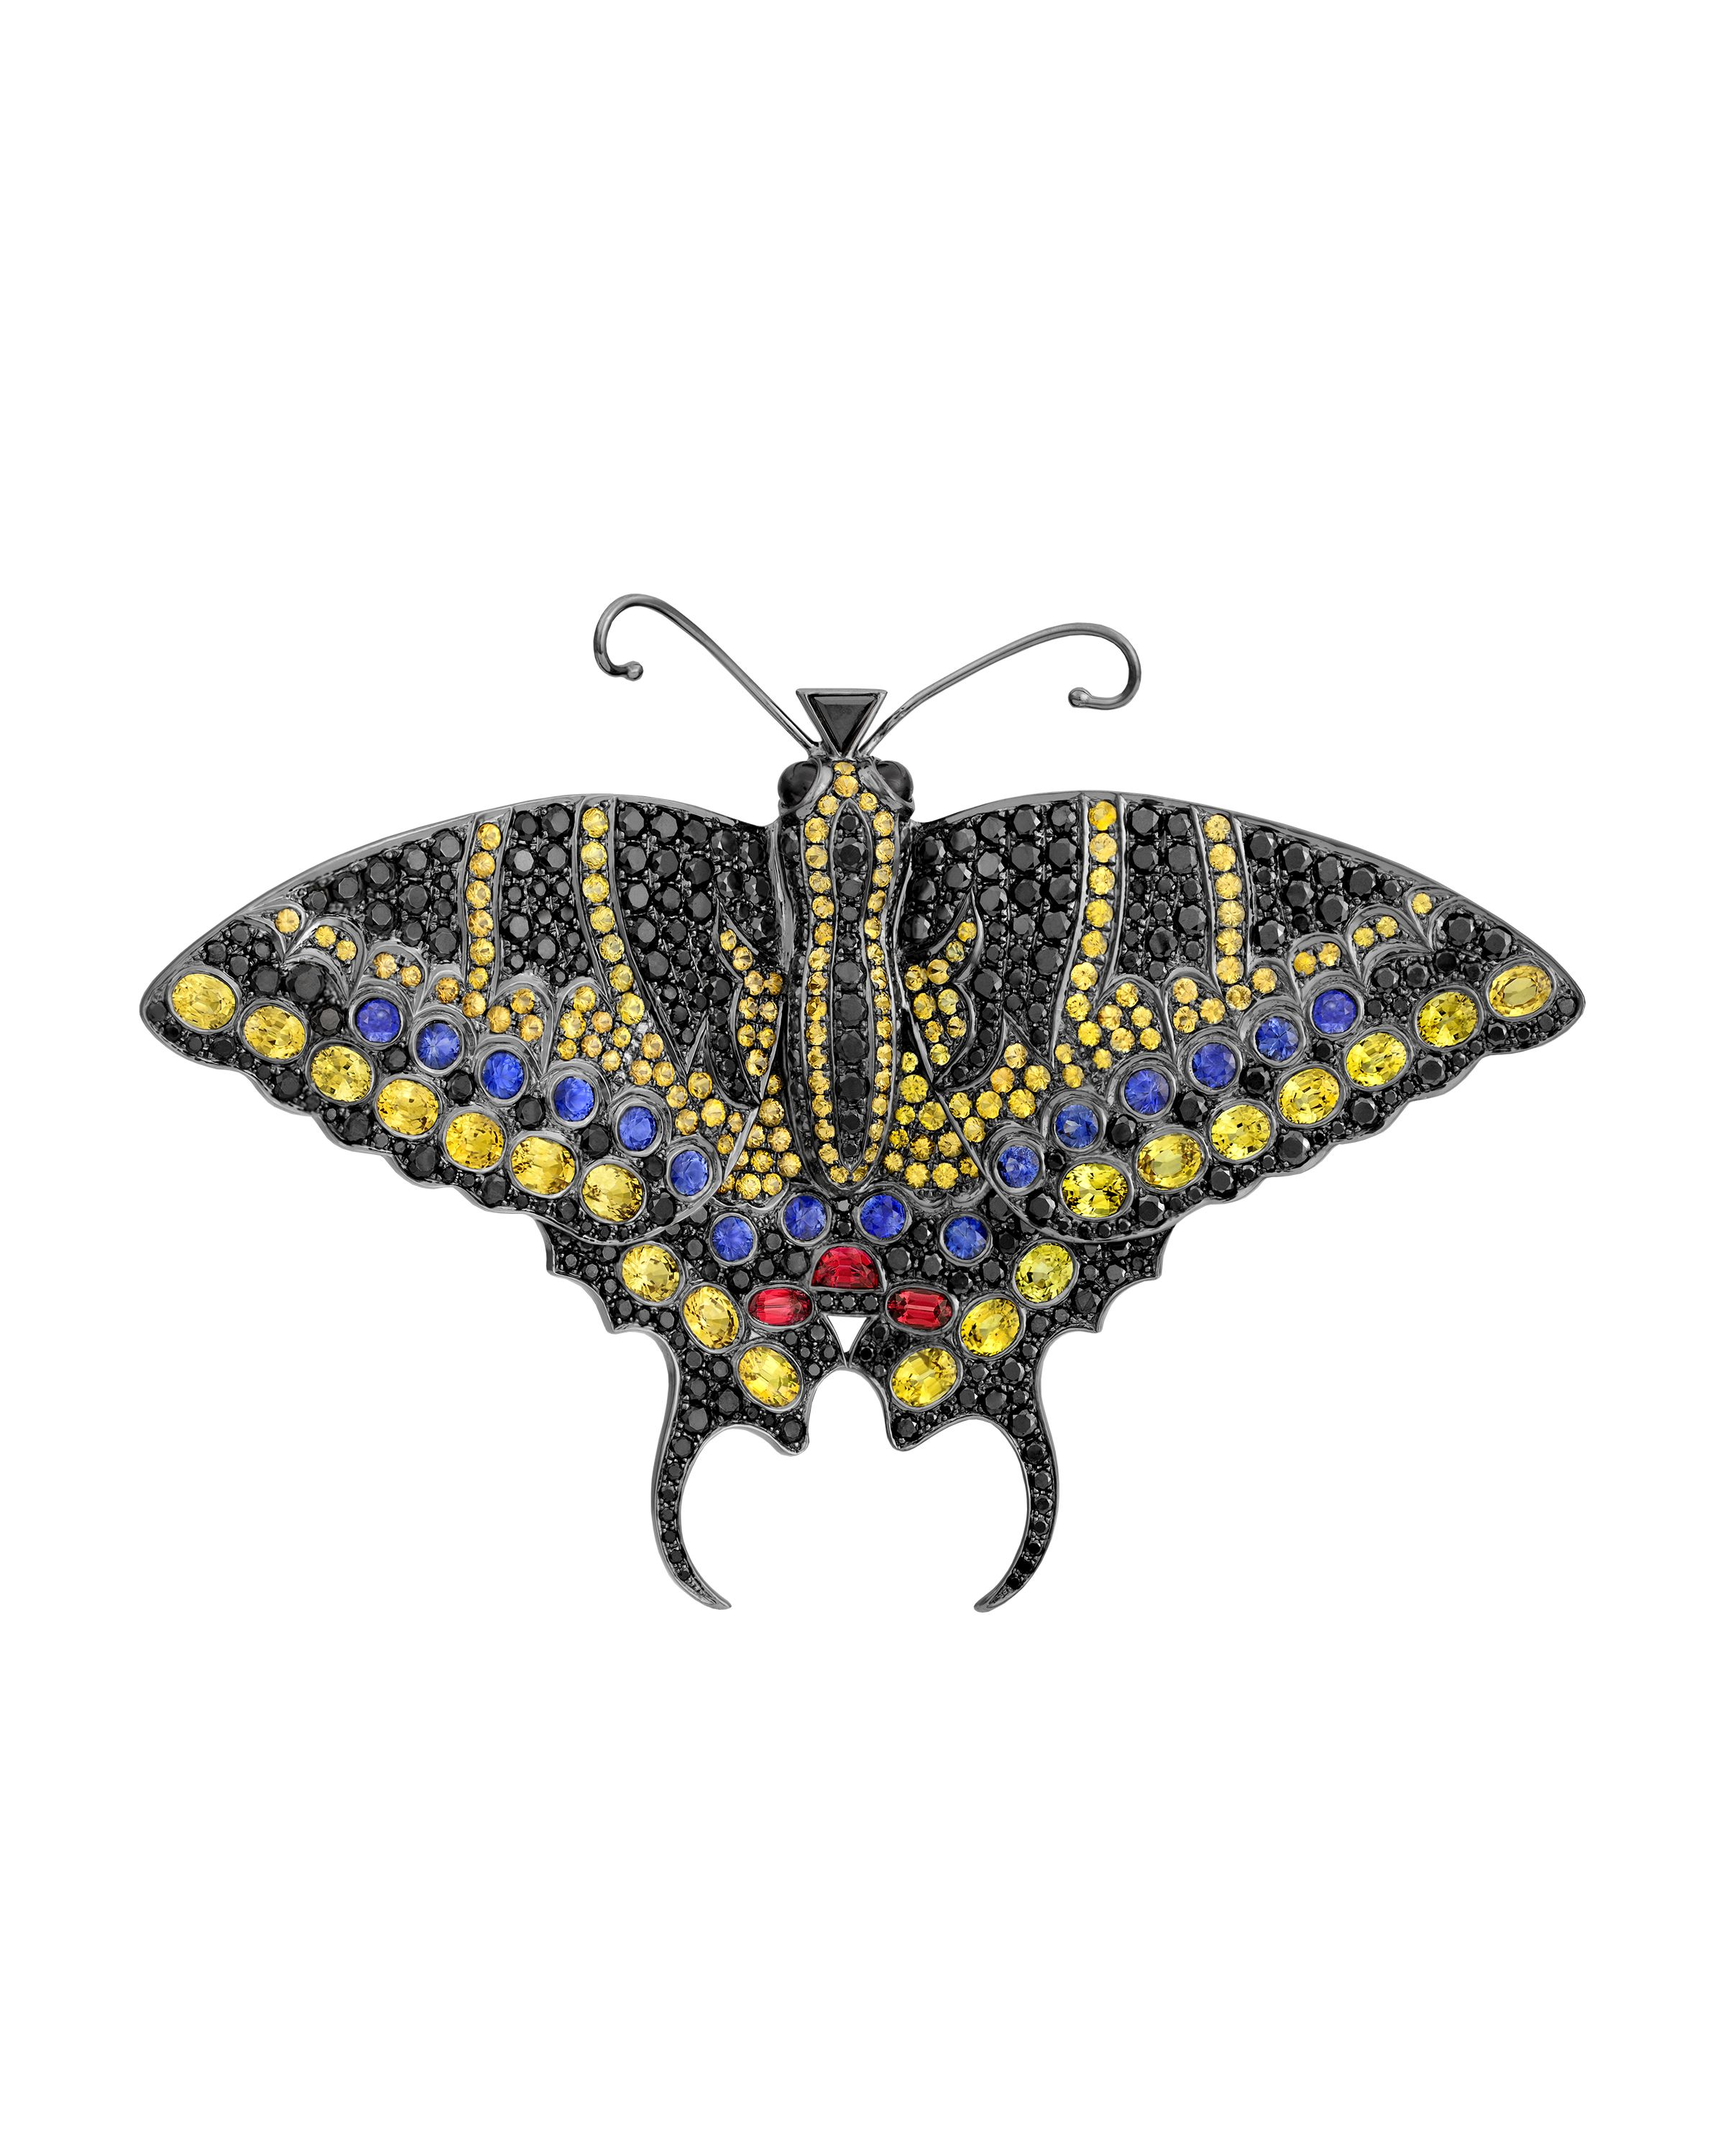 purple close heliophorus file of dzongu epicles sapphire wiki position butterfly godart wing